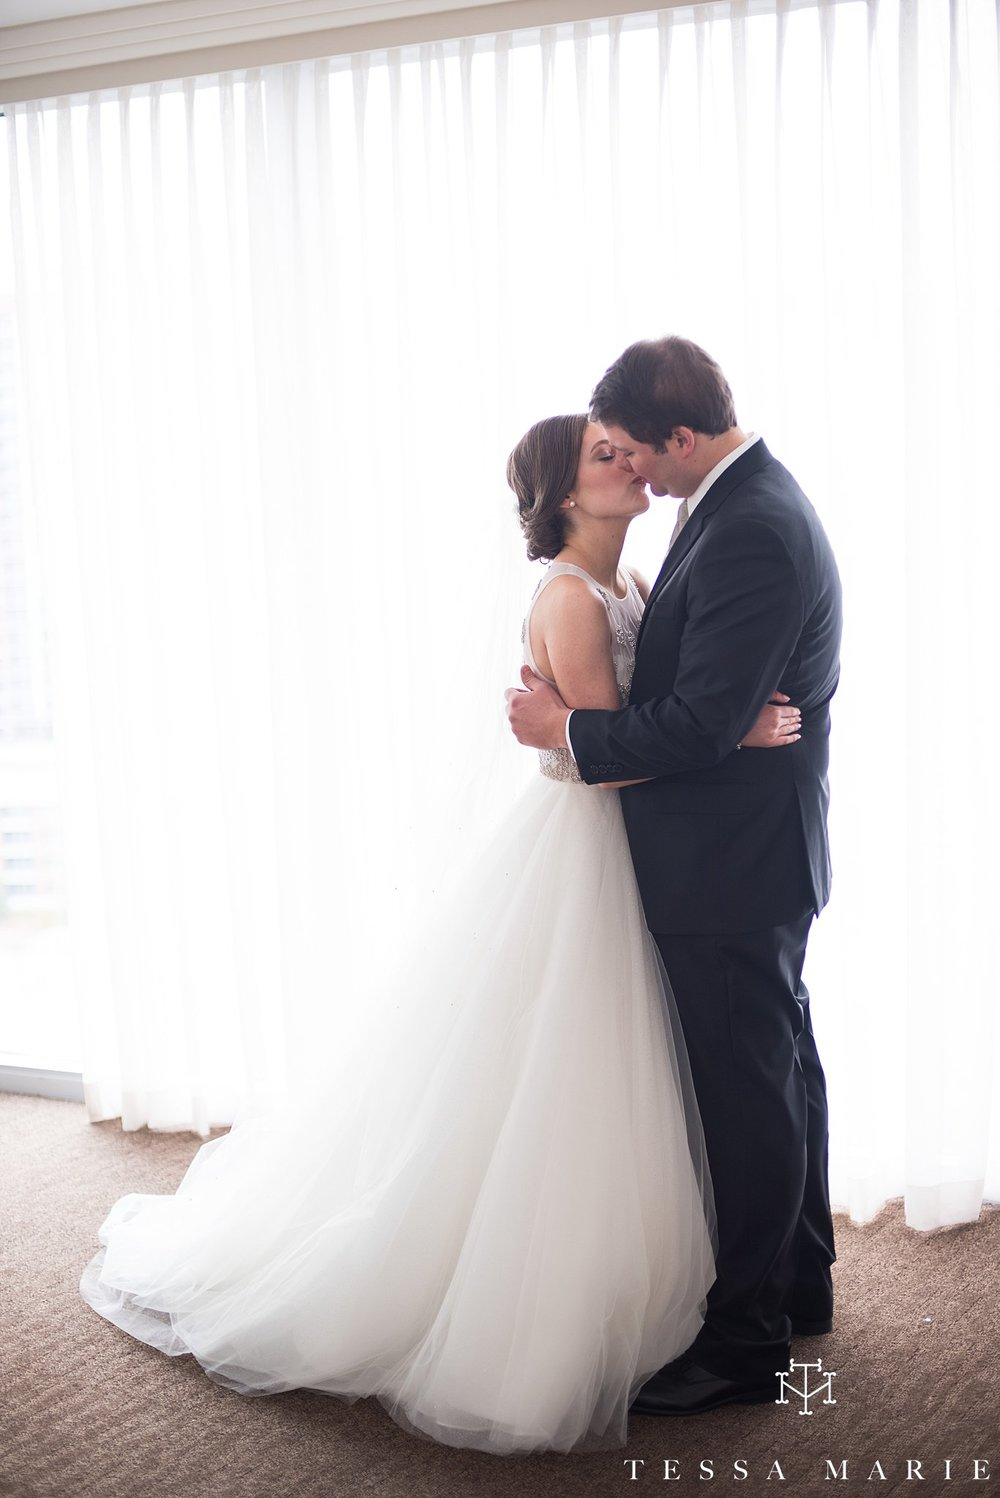 atlanta_wedding_photographer_tessa_marie_weddings_lowes_hotel_peachtree_midtown_fall_wedding_0194.jpg